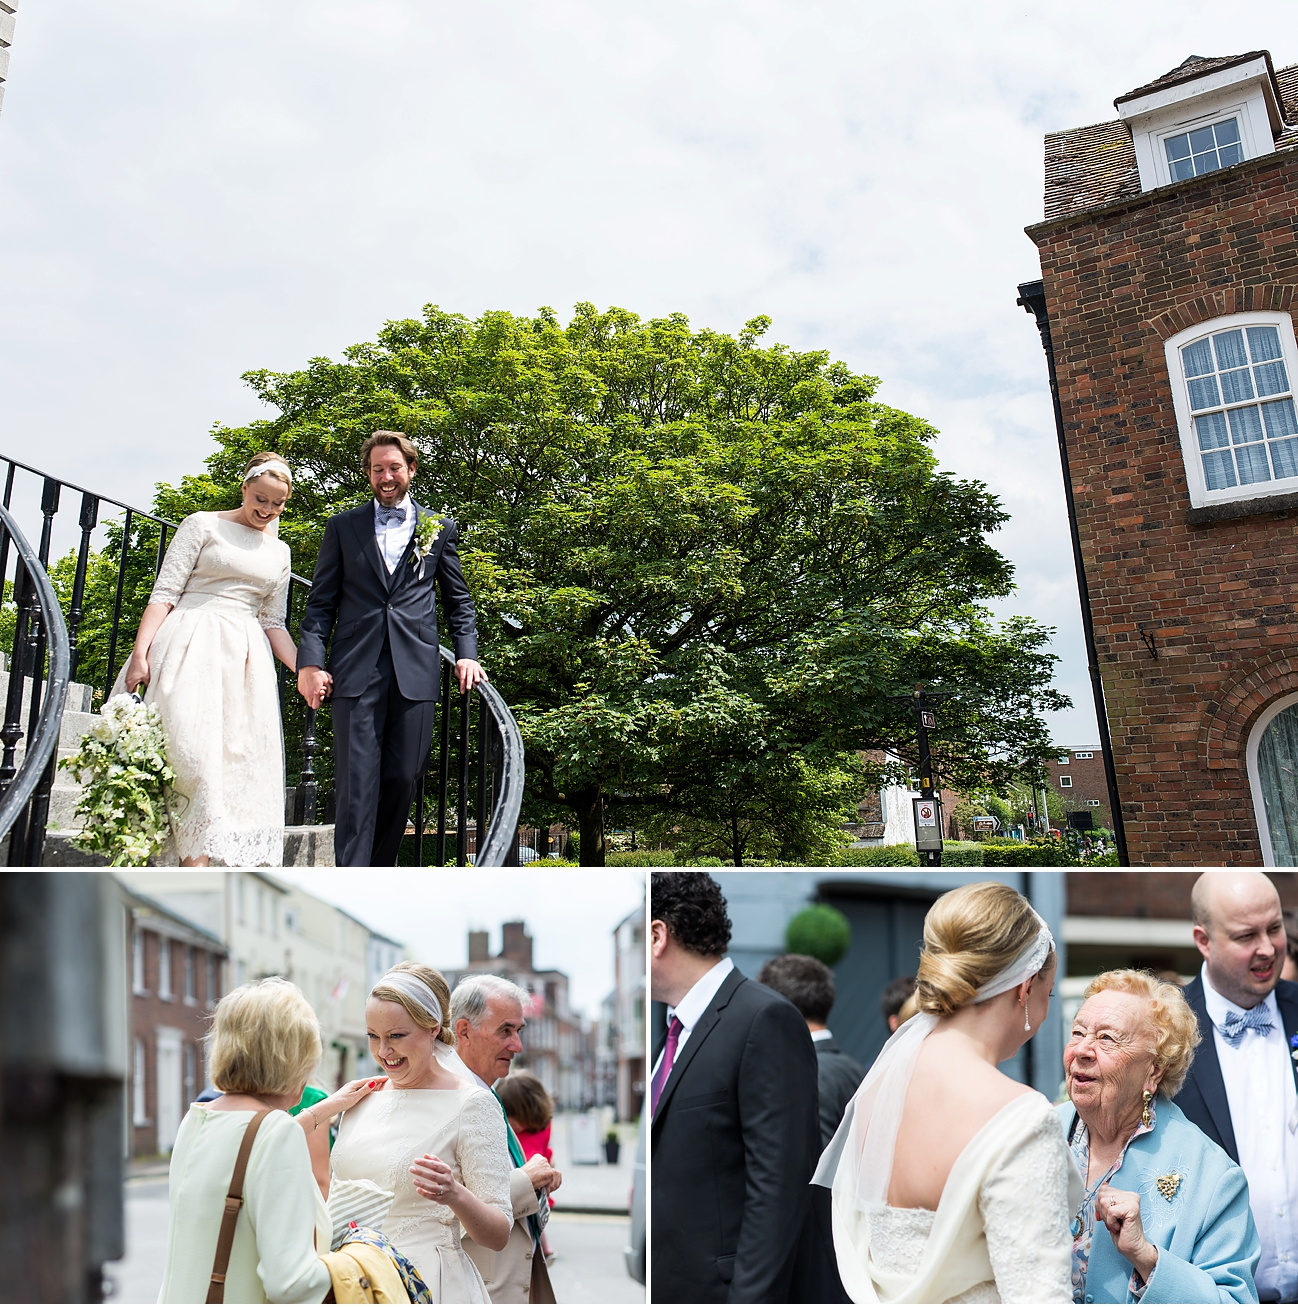 Poole Guildhall Wedding Ceremony